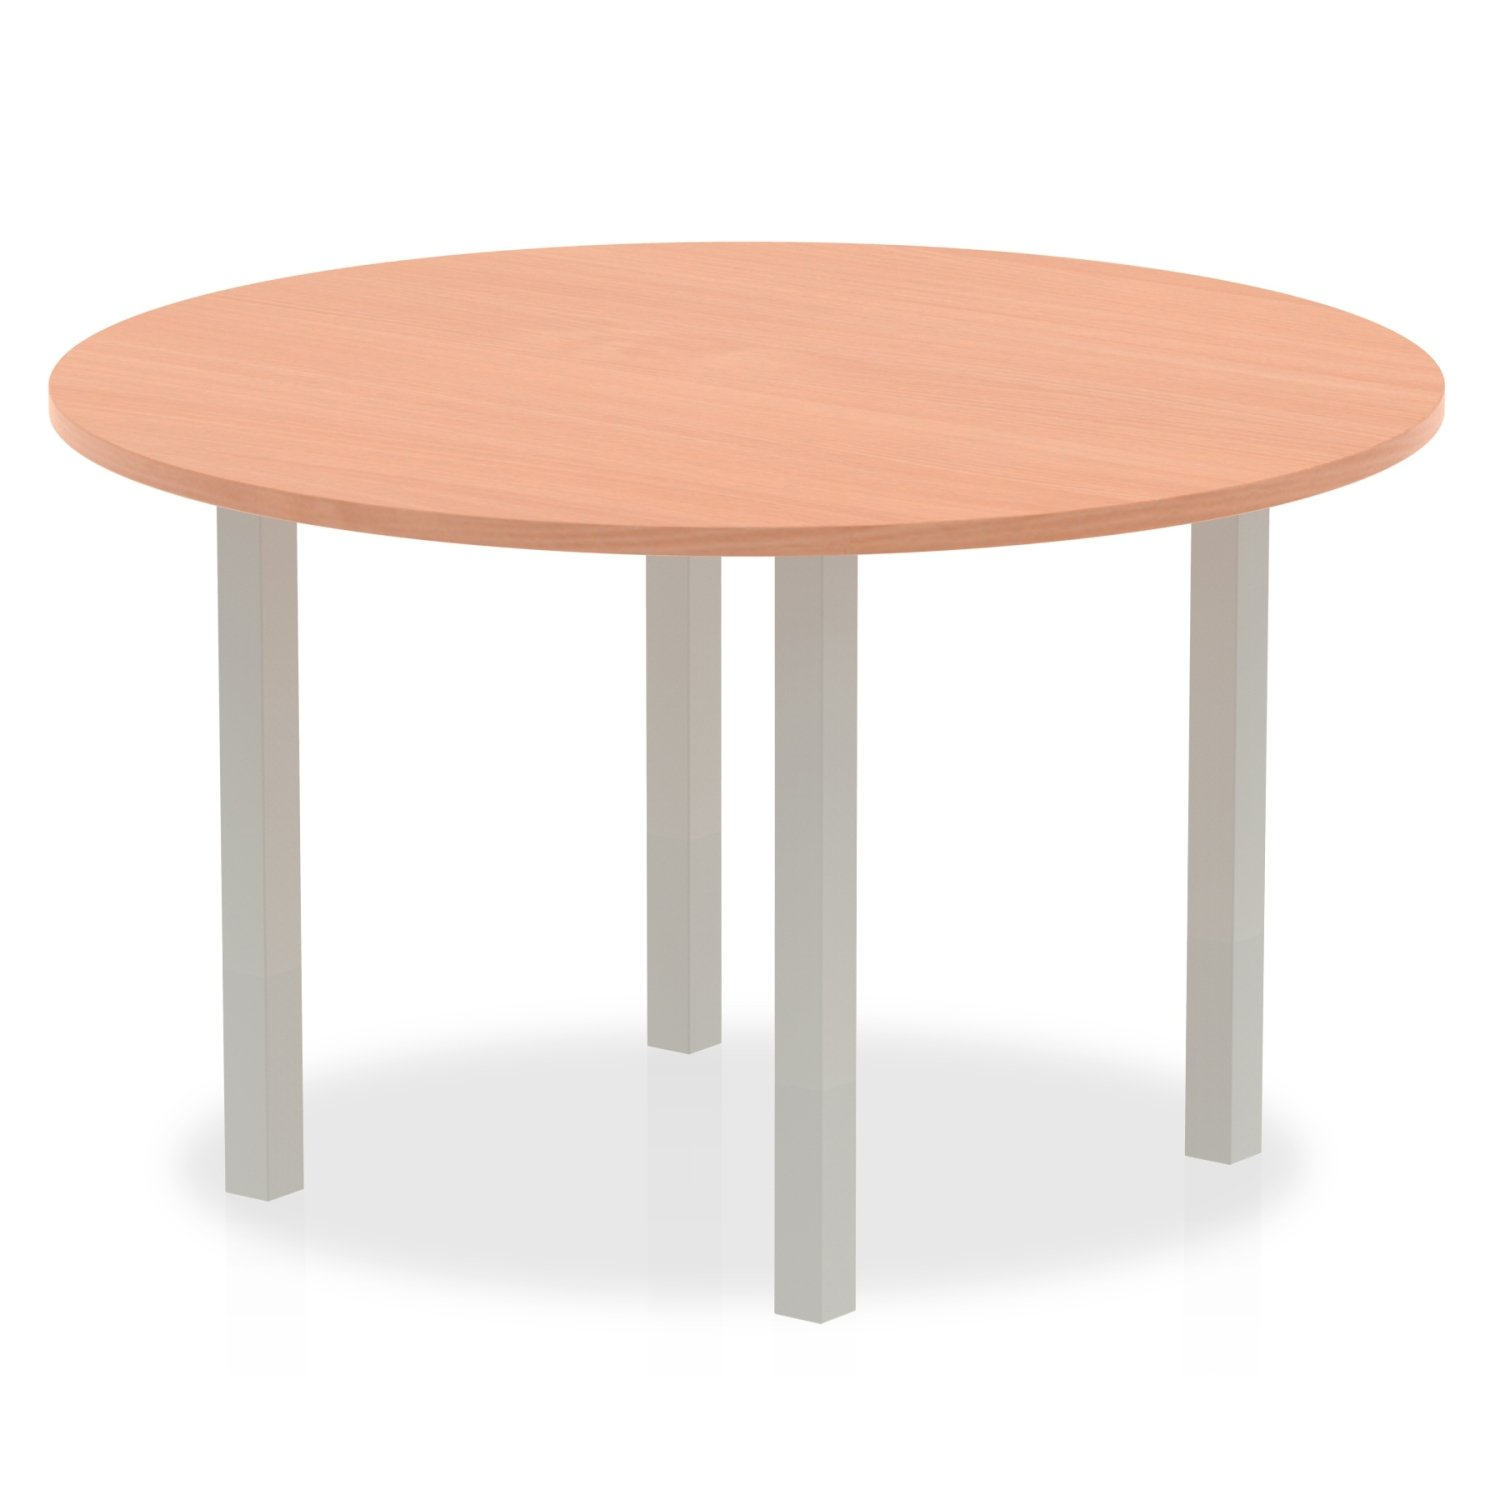 Definition Of Round Table.Gentoo Conference Free Standing Round Table 1200 X 1200mm